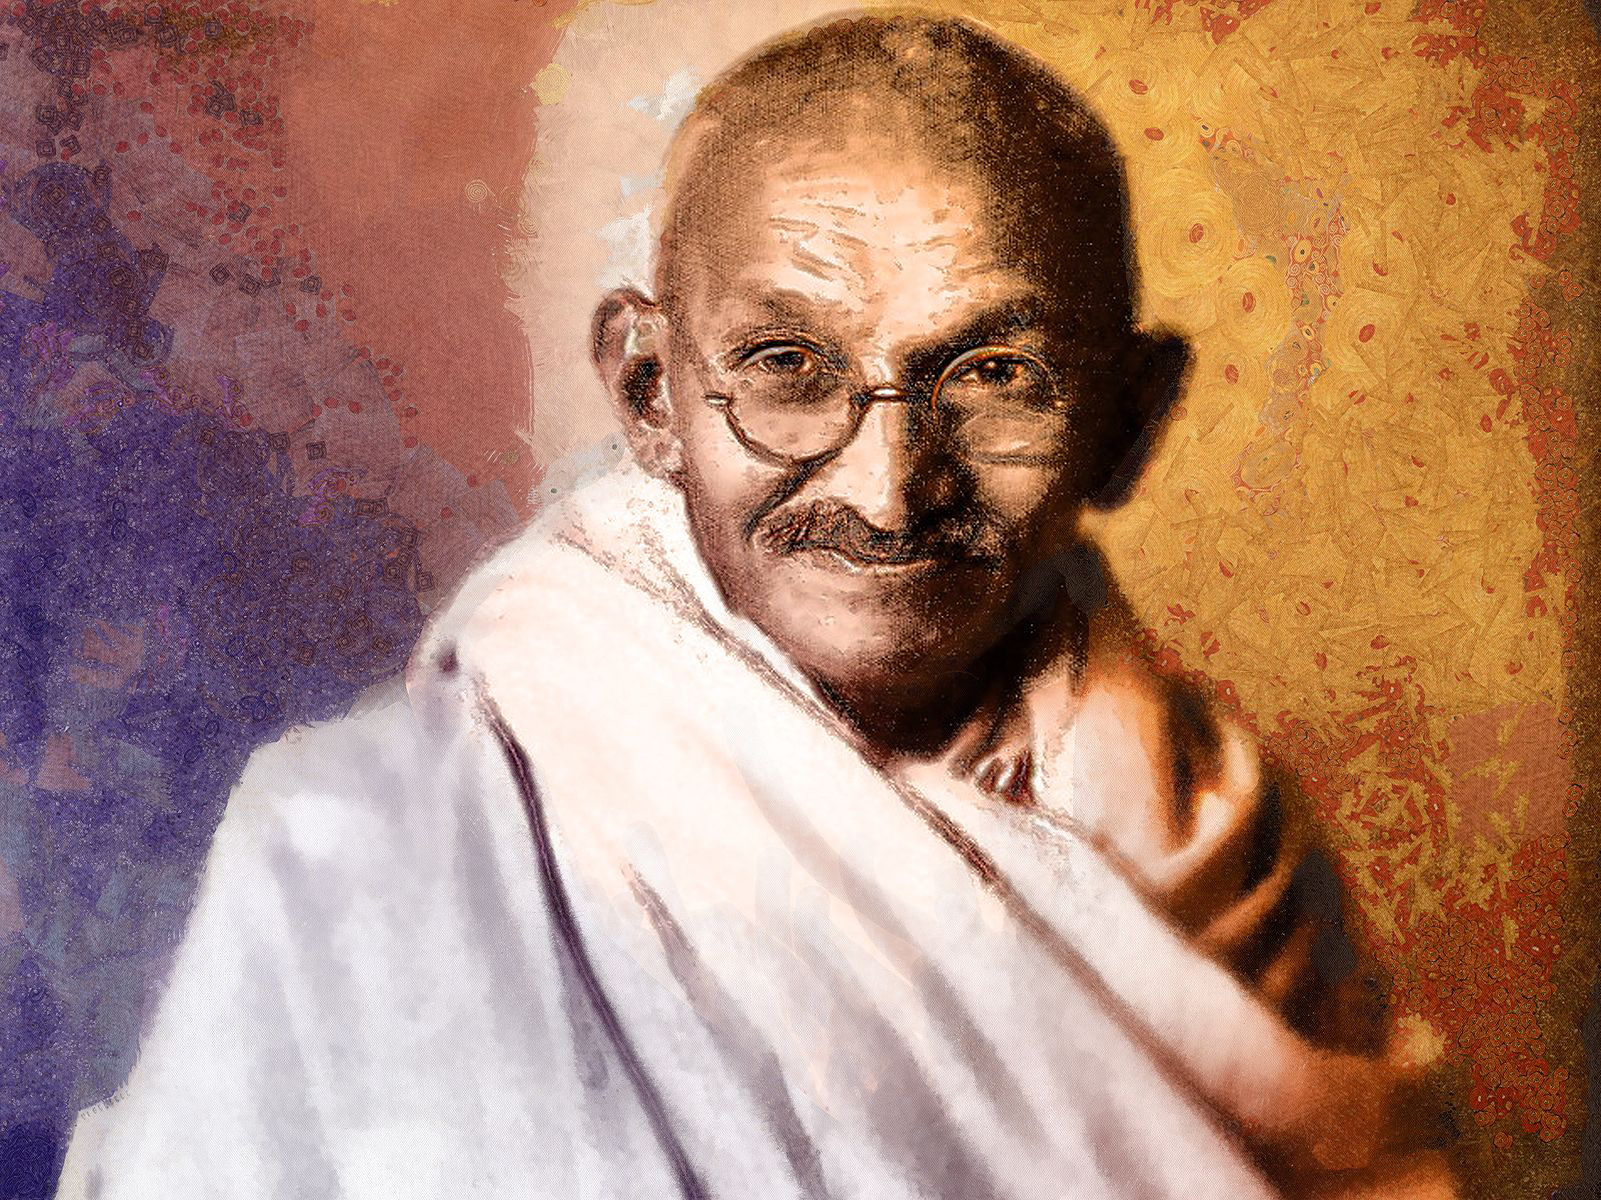 Was Gandhiji suffering from social phobia?